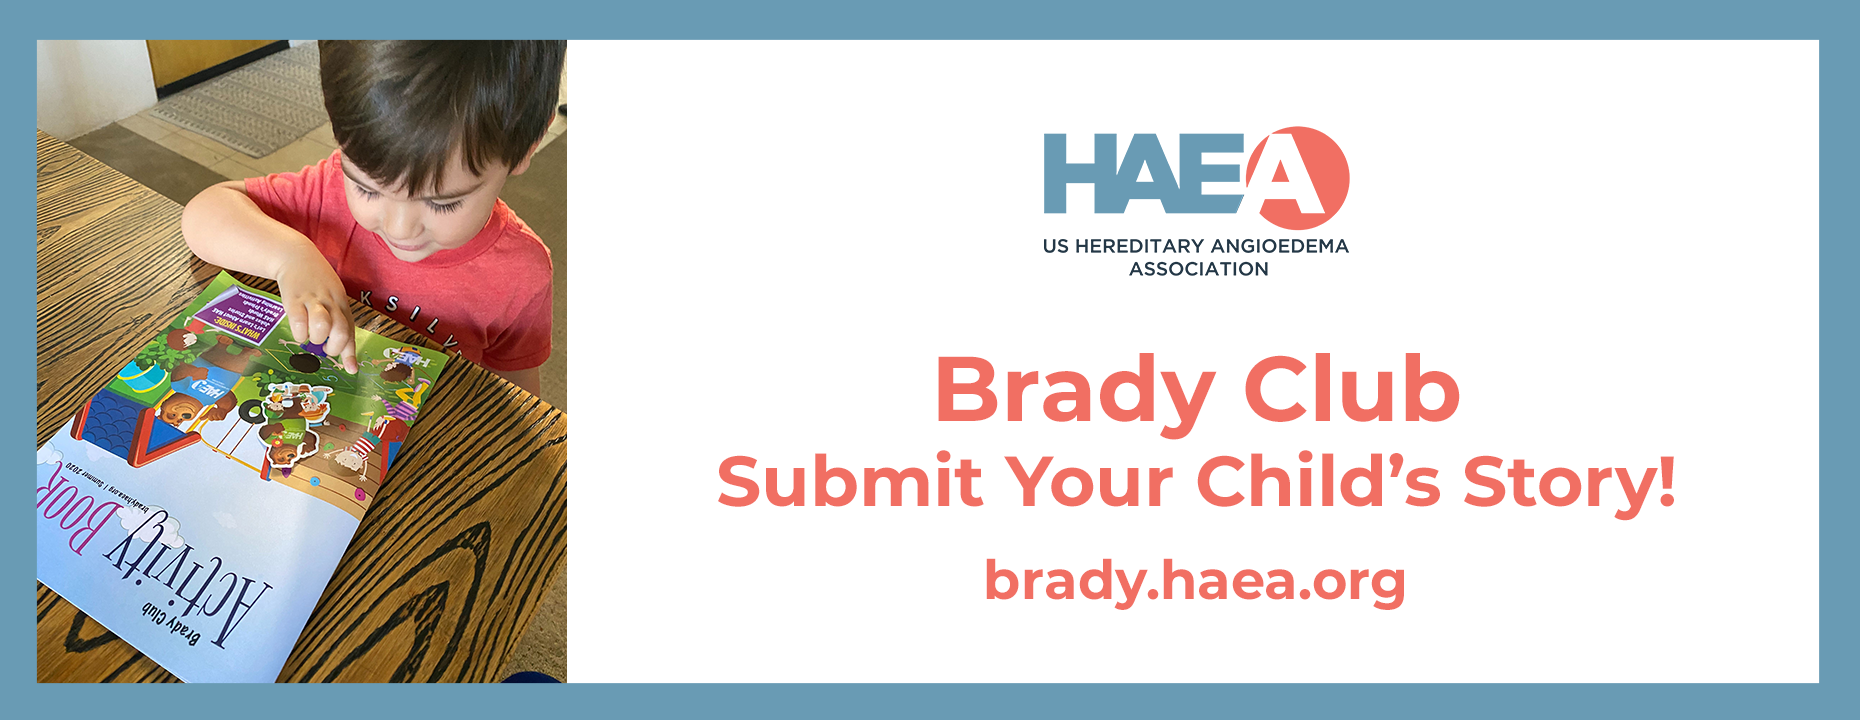 Brady Club - Submit your Child's Story!